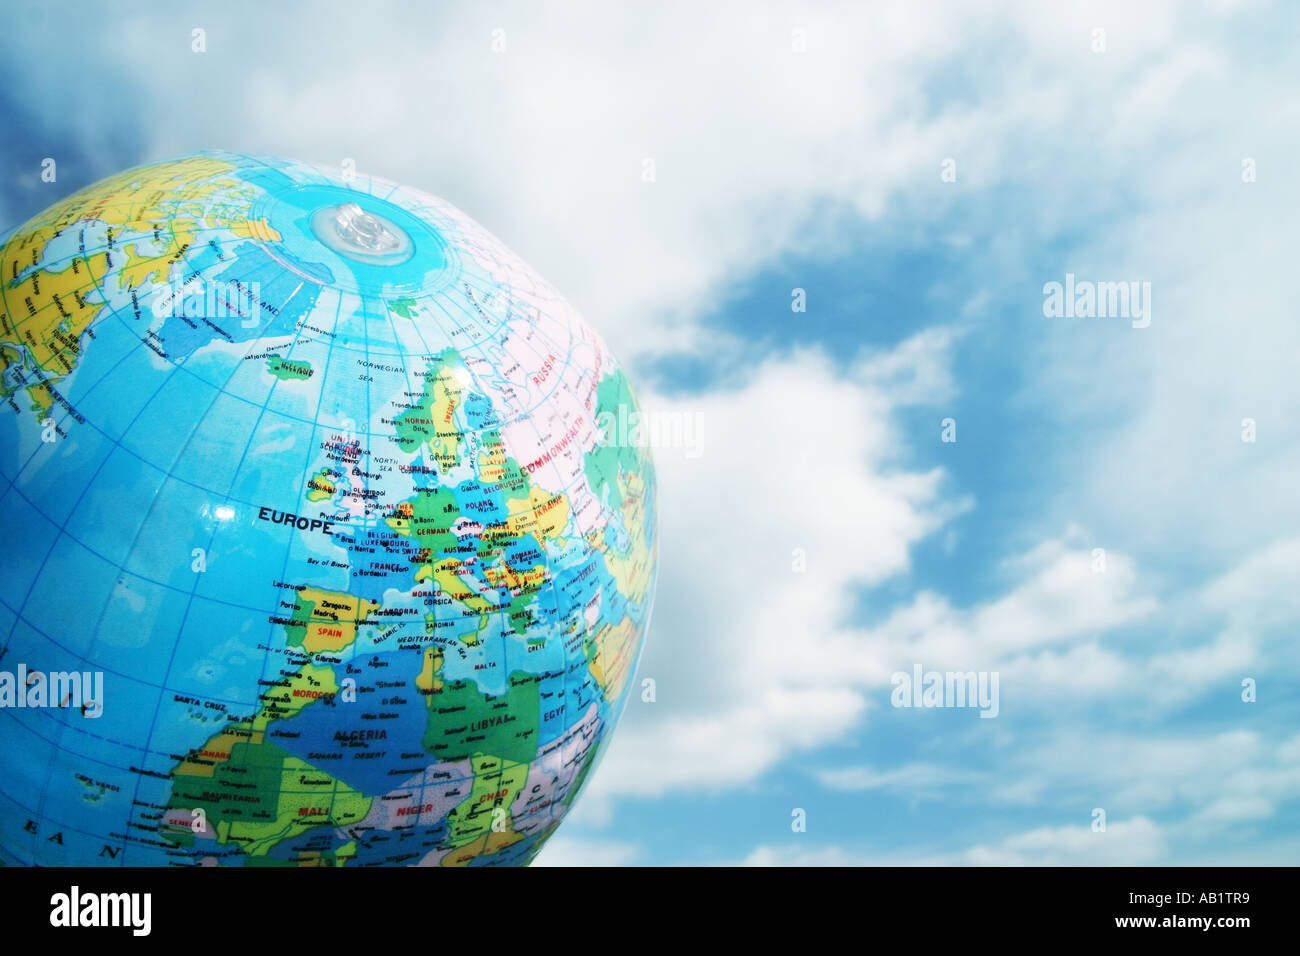 map of Europe on a inflatable globe - Stock Image